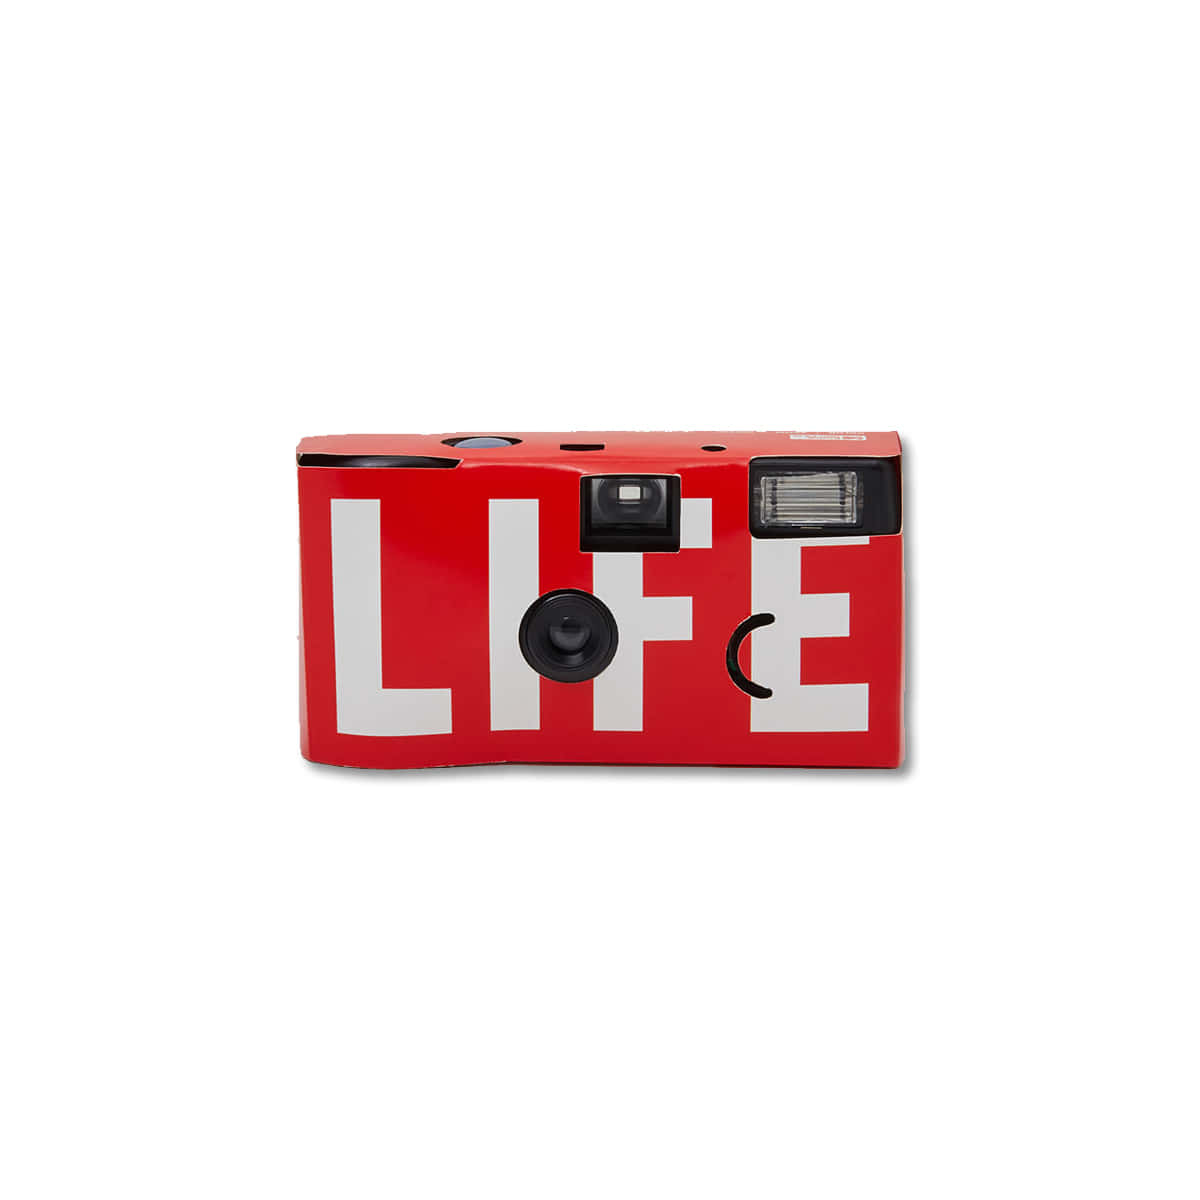 [LIFE ACHIVE] LIFE LOGO SINGLE-USE CAMERA